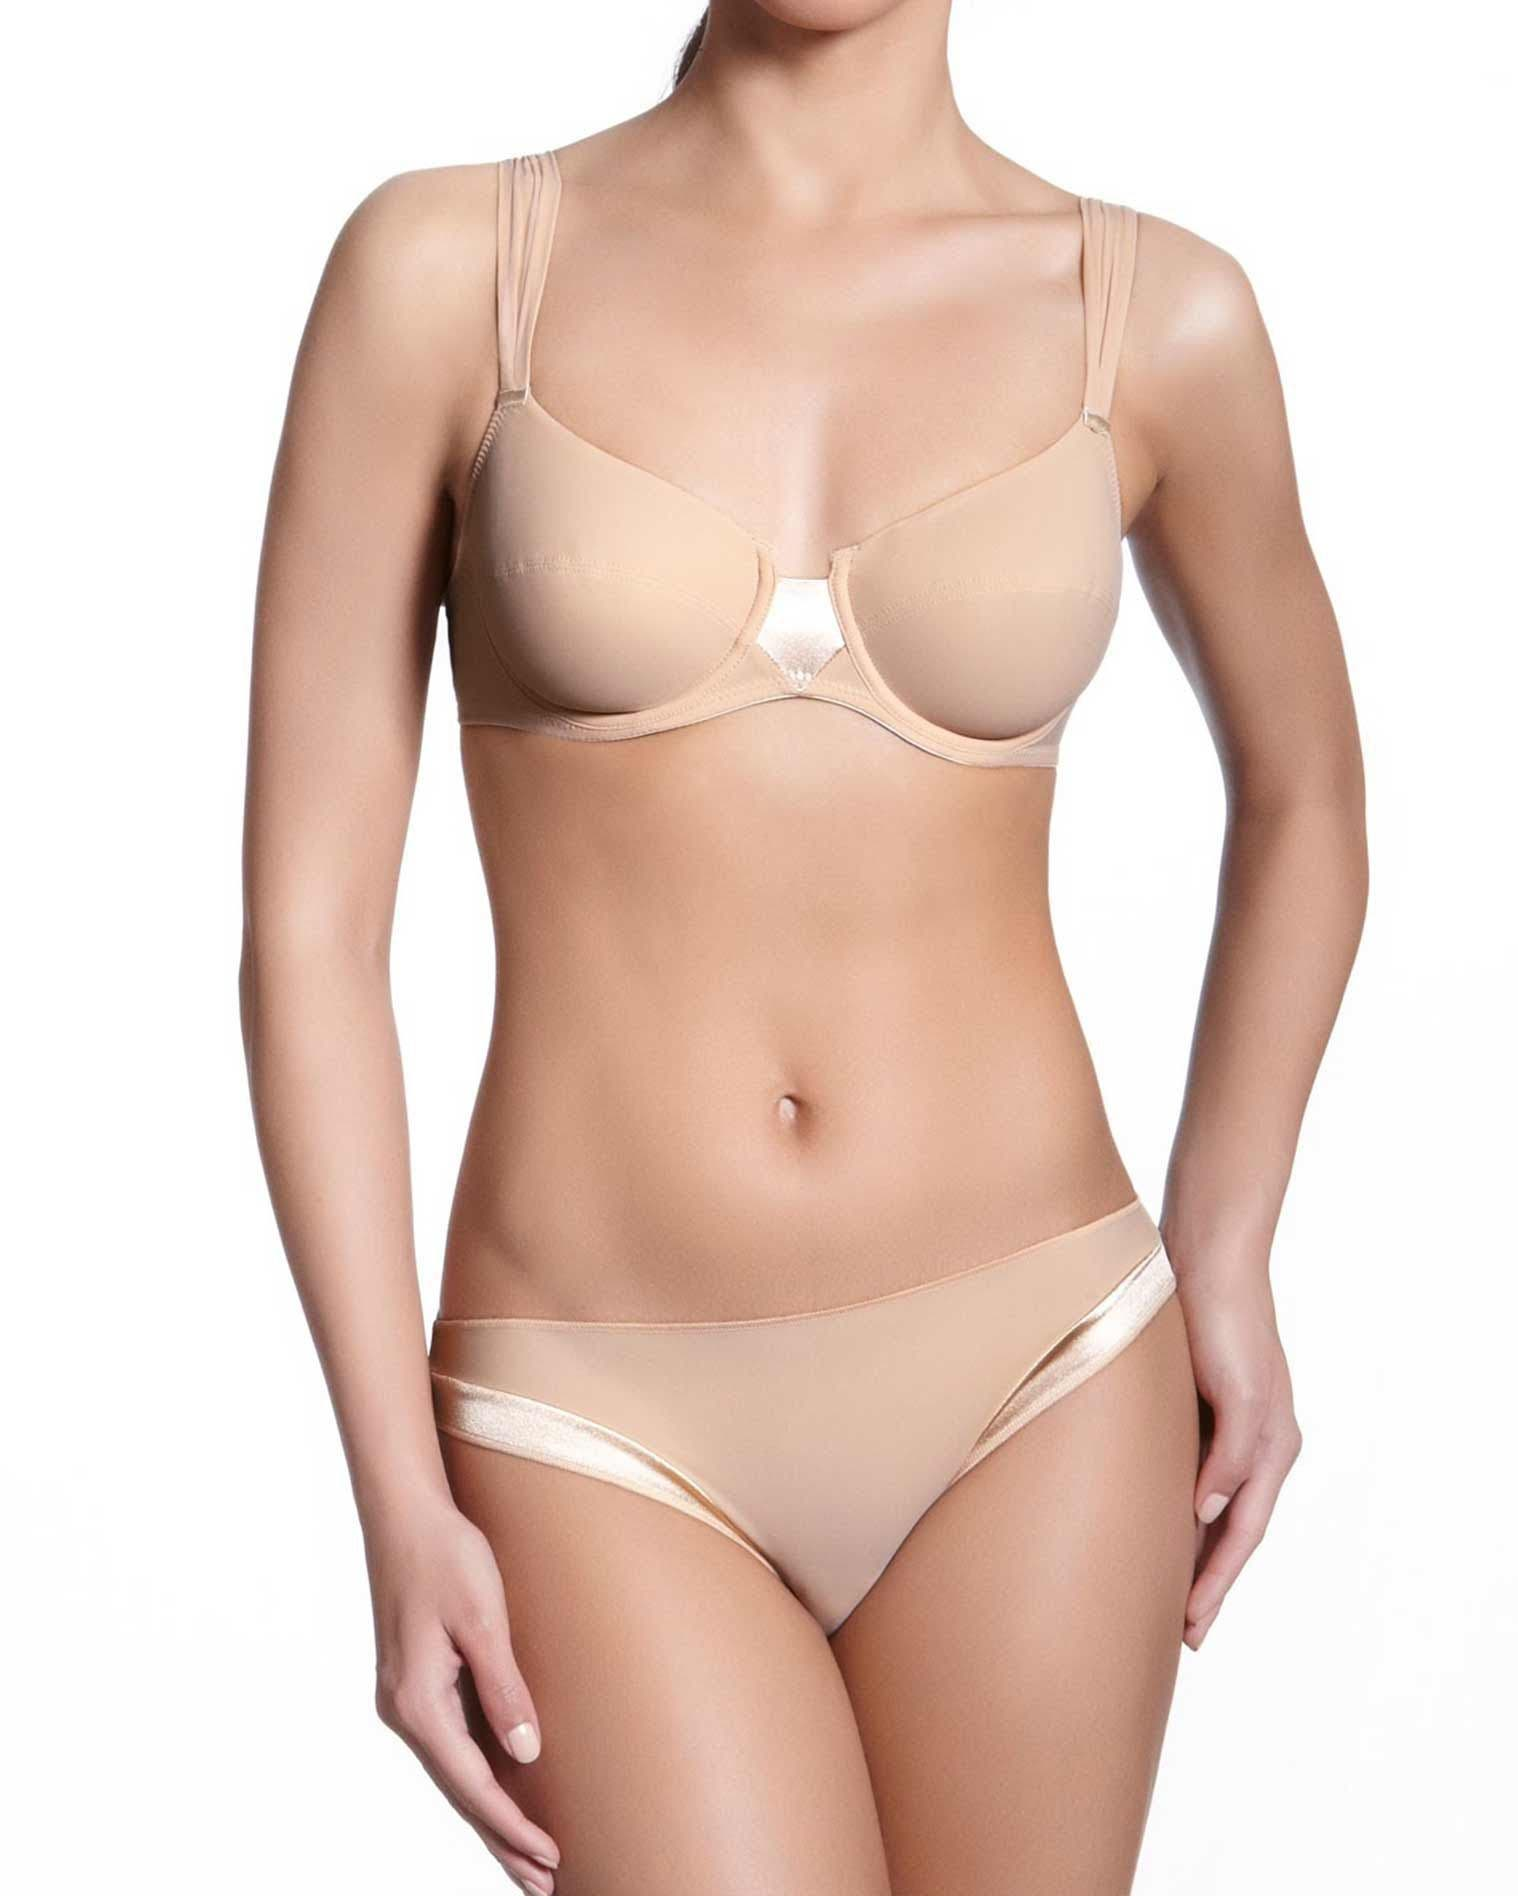 Underwired full cup bra - Nude